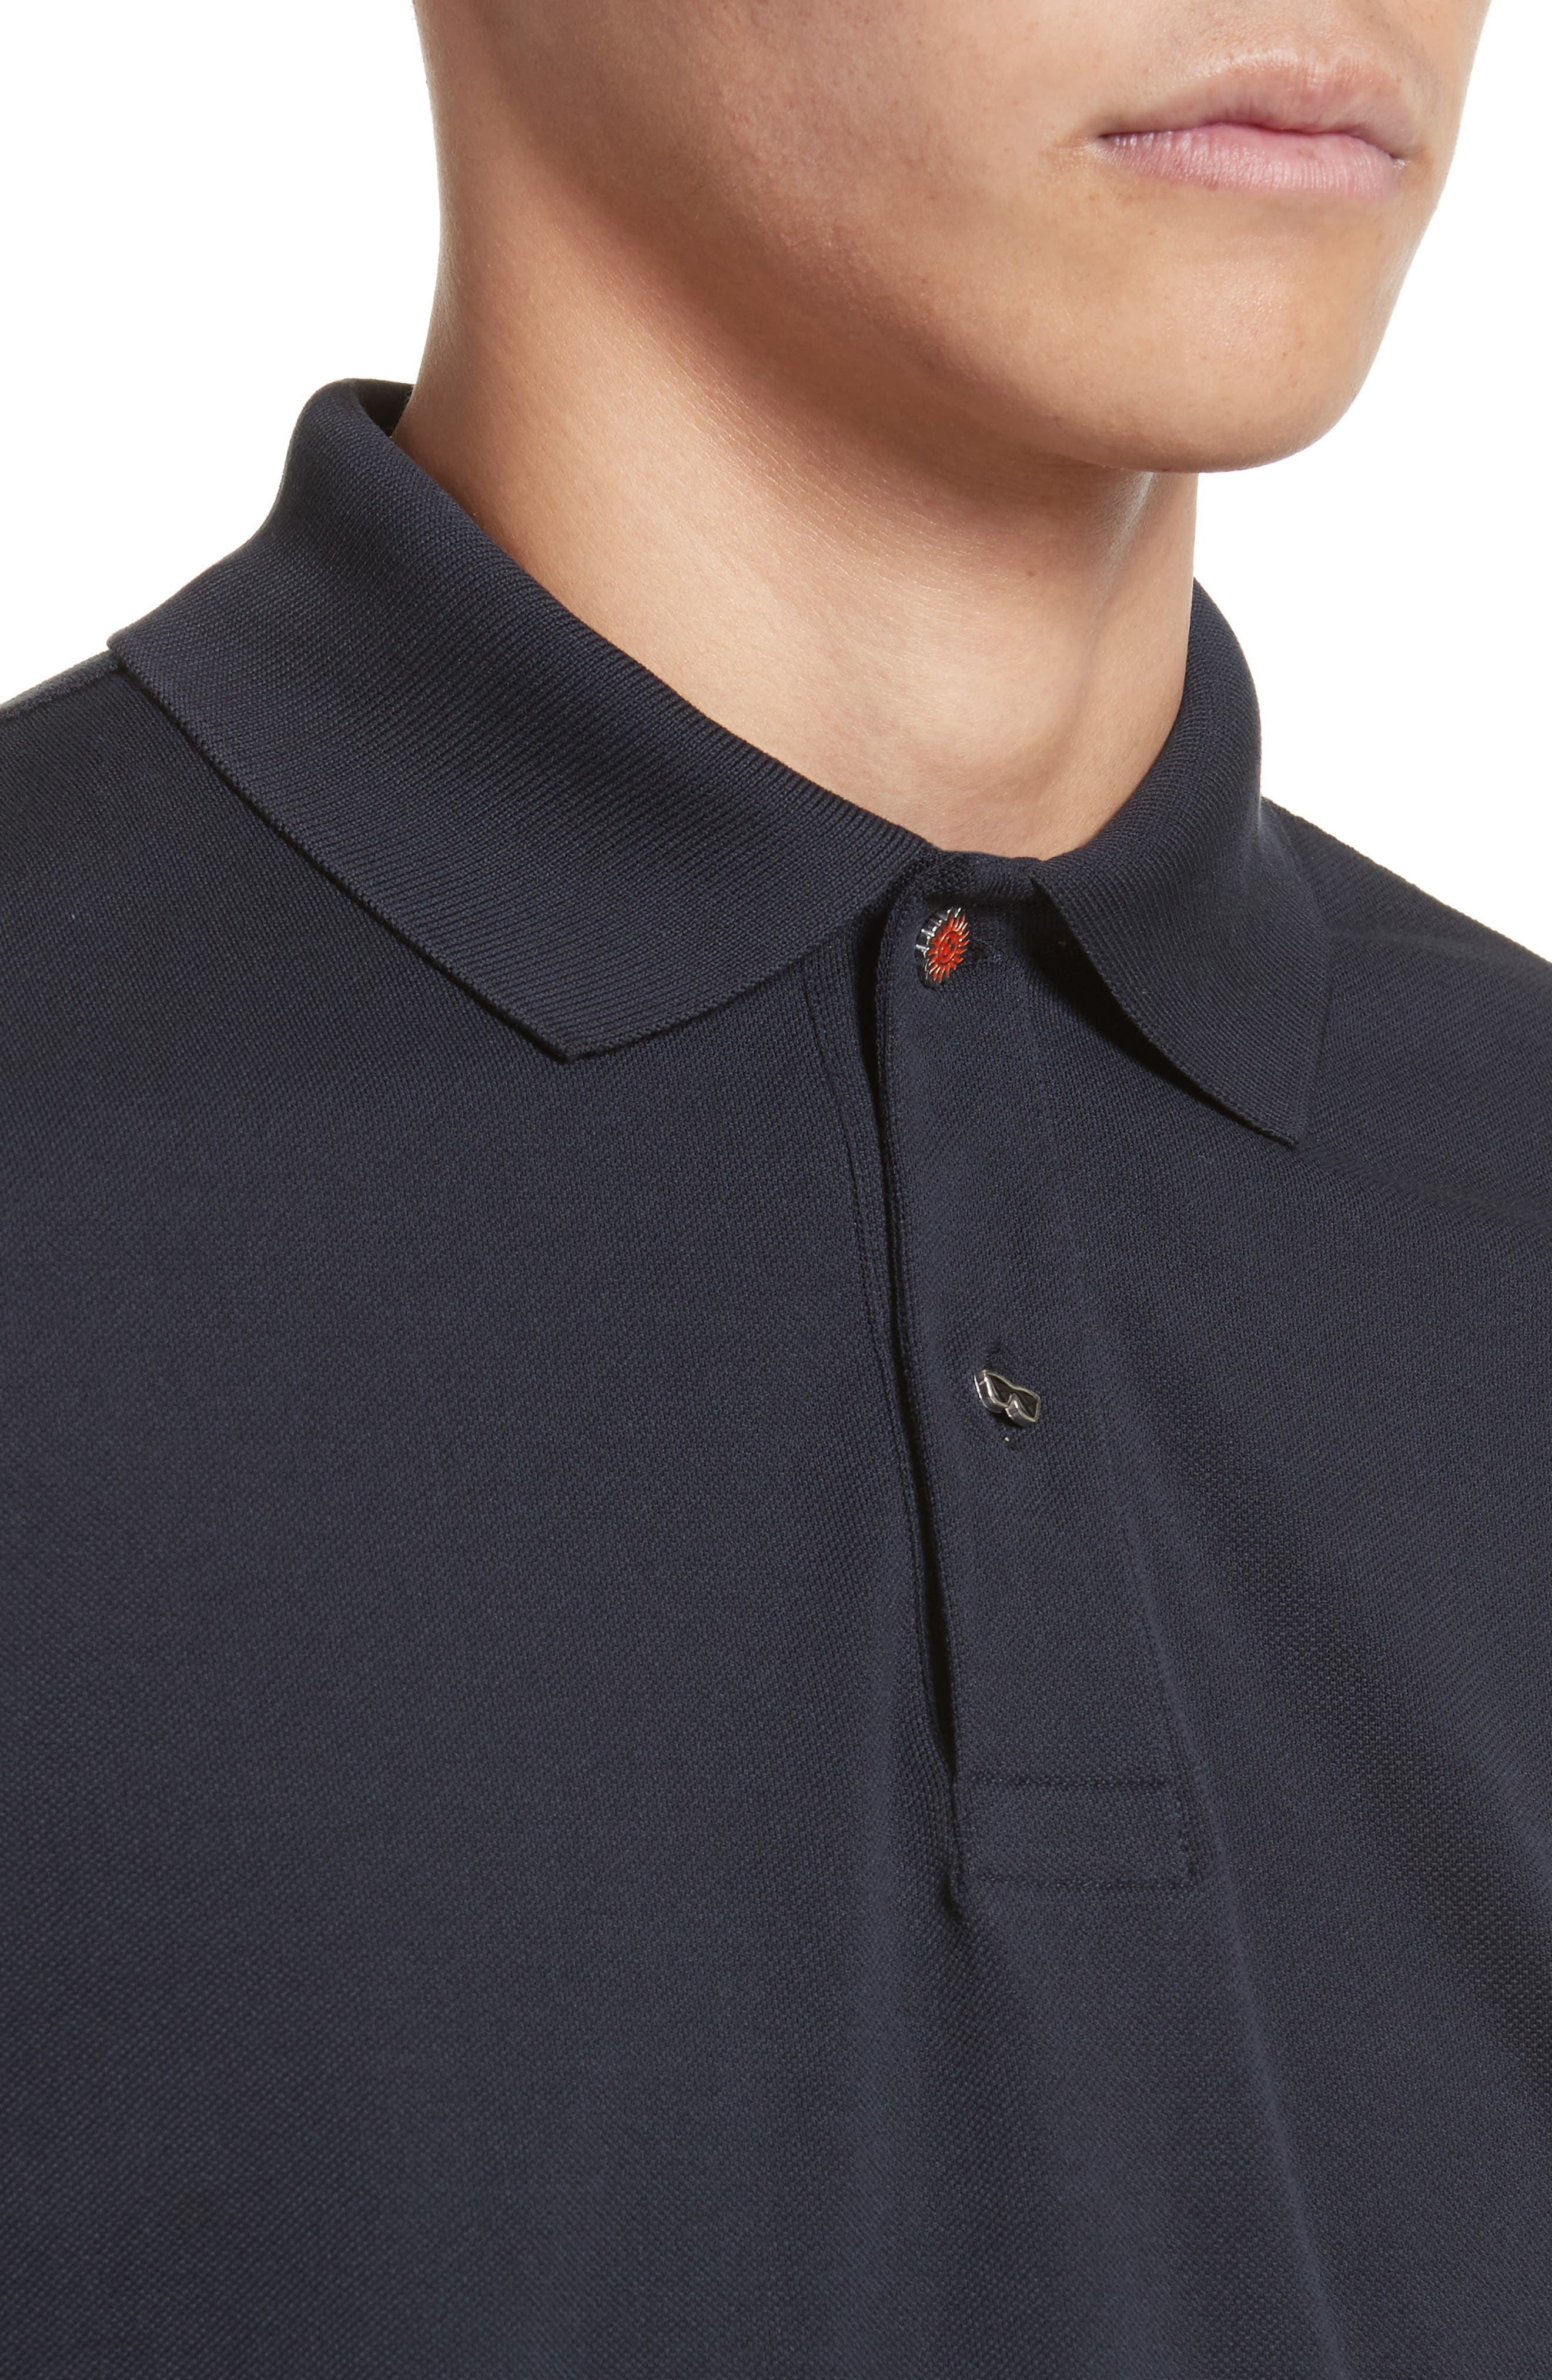 Alternate Image 4  - Paul Smith Piqué Polo with Character Buttons